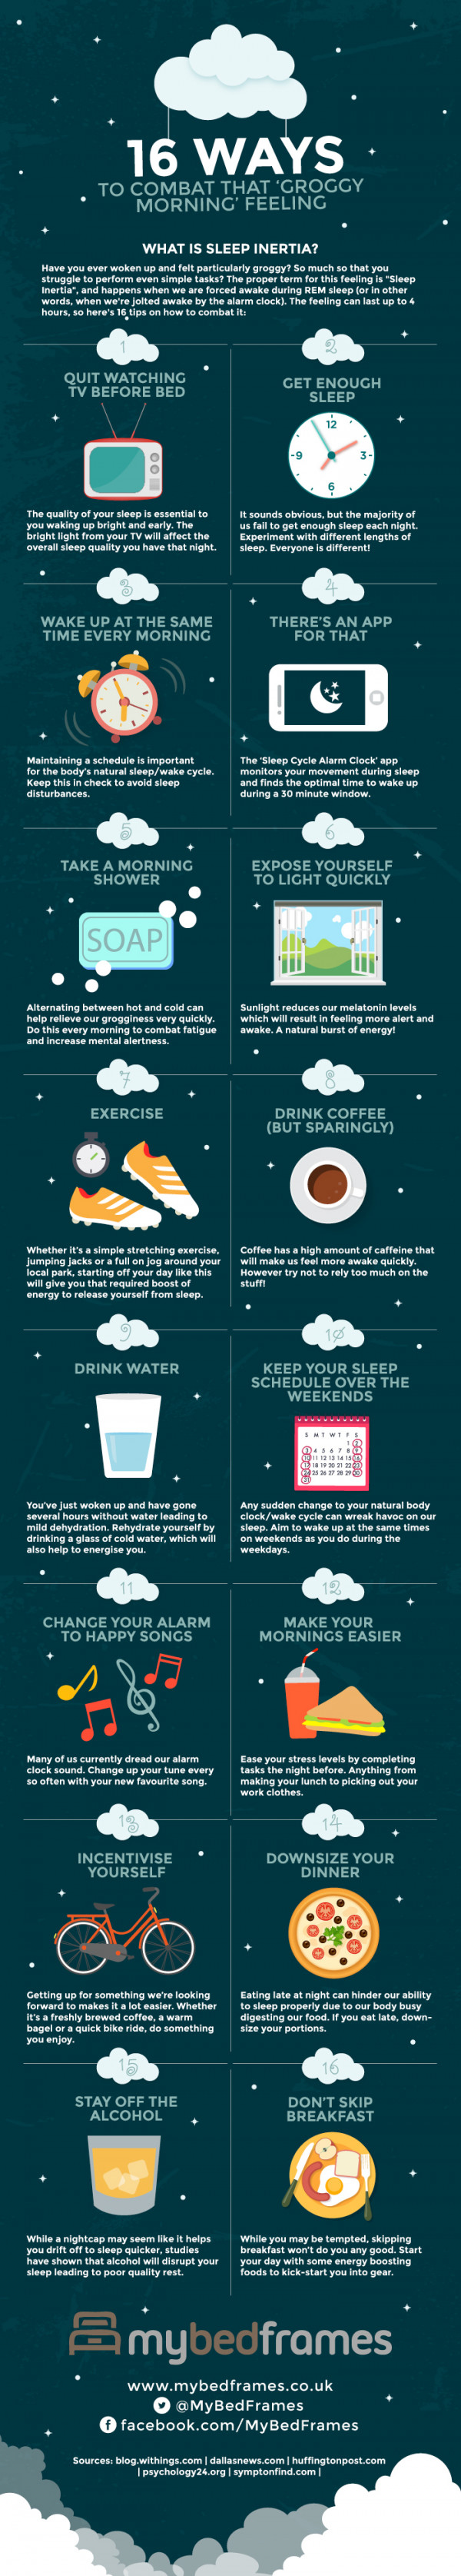 Ways To Get Energy Naturally In The Morning